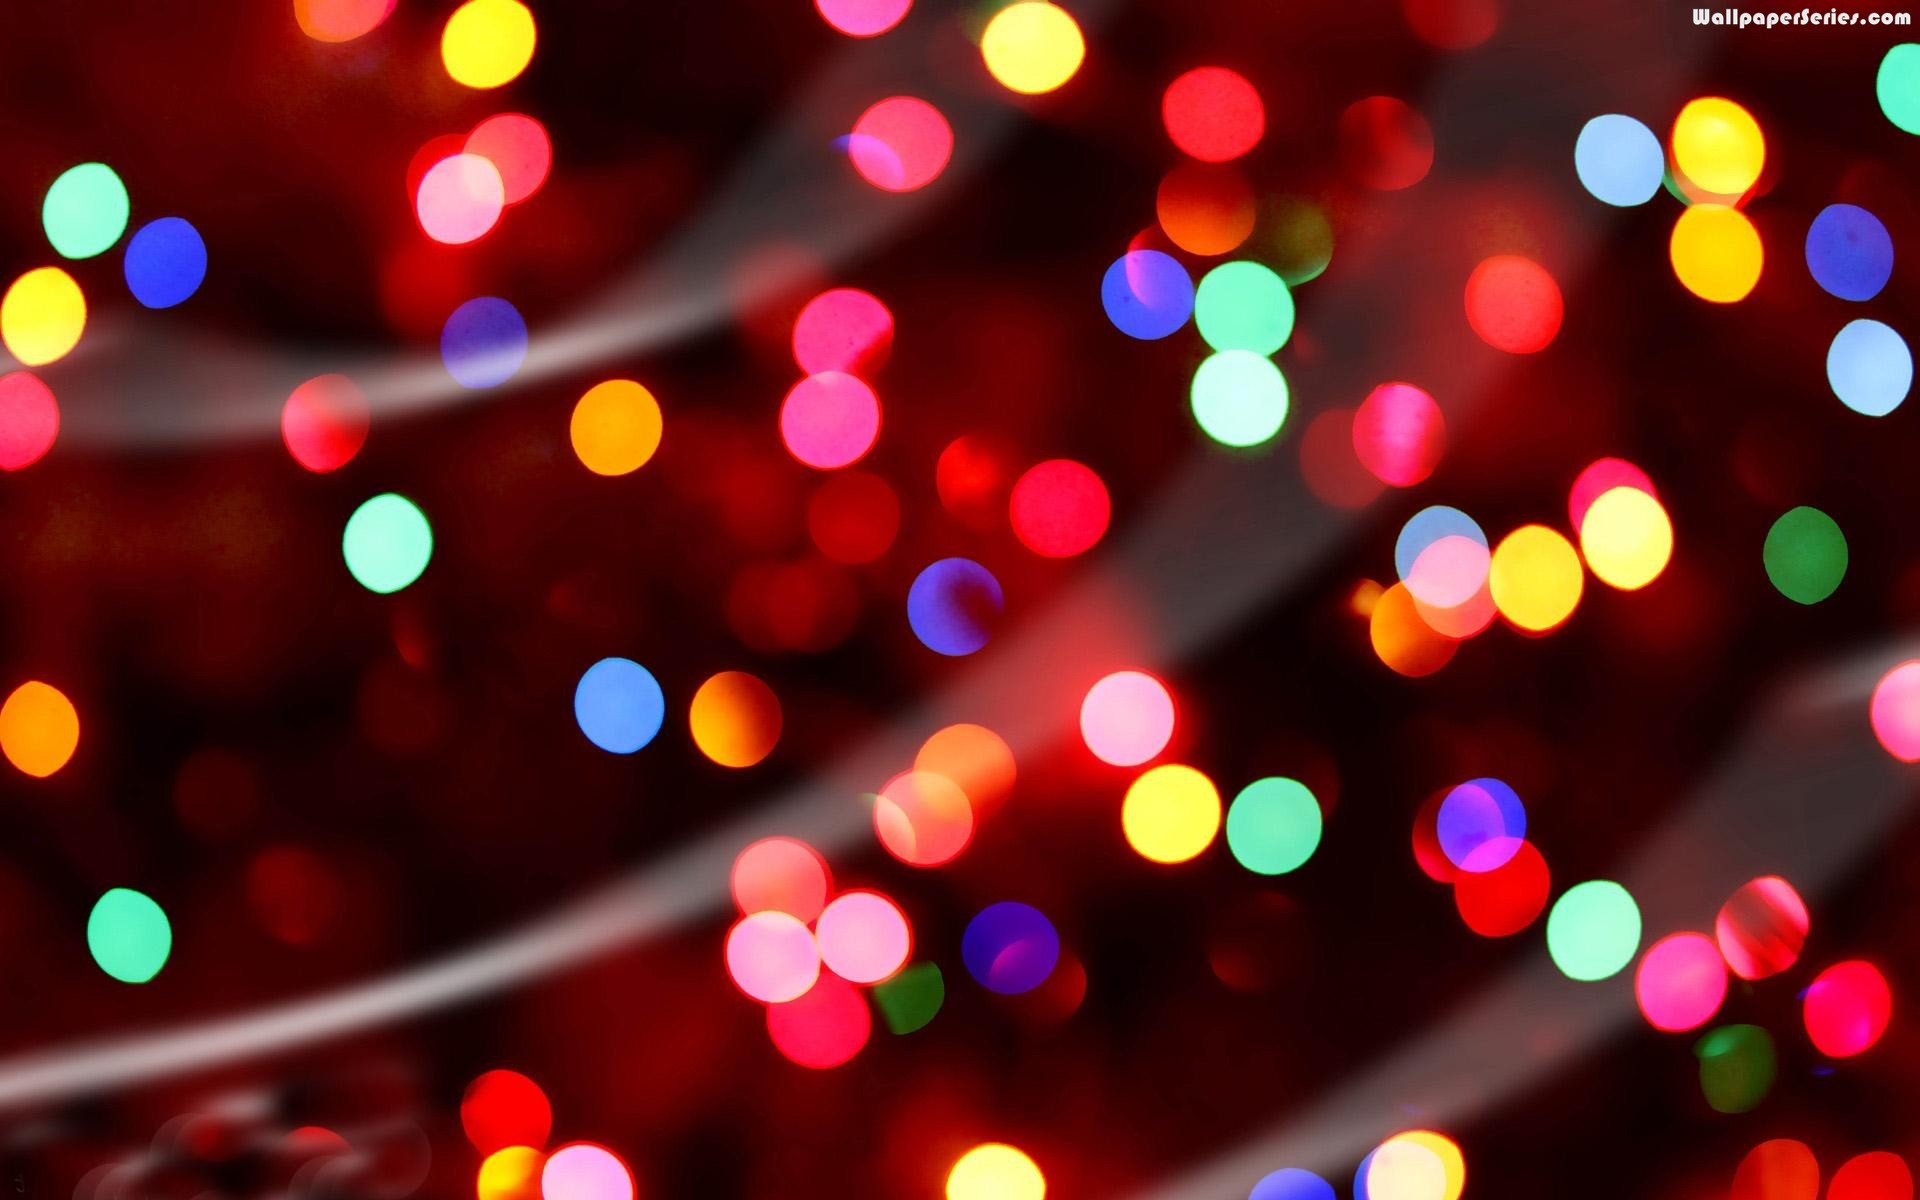 Christmas Lights Background 42 Images